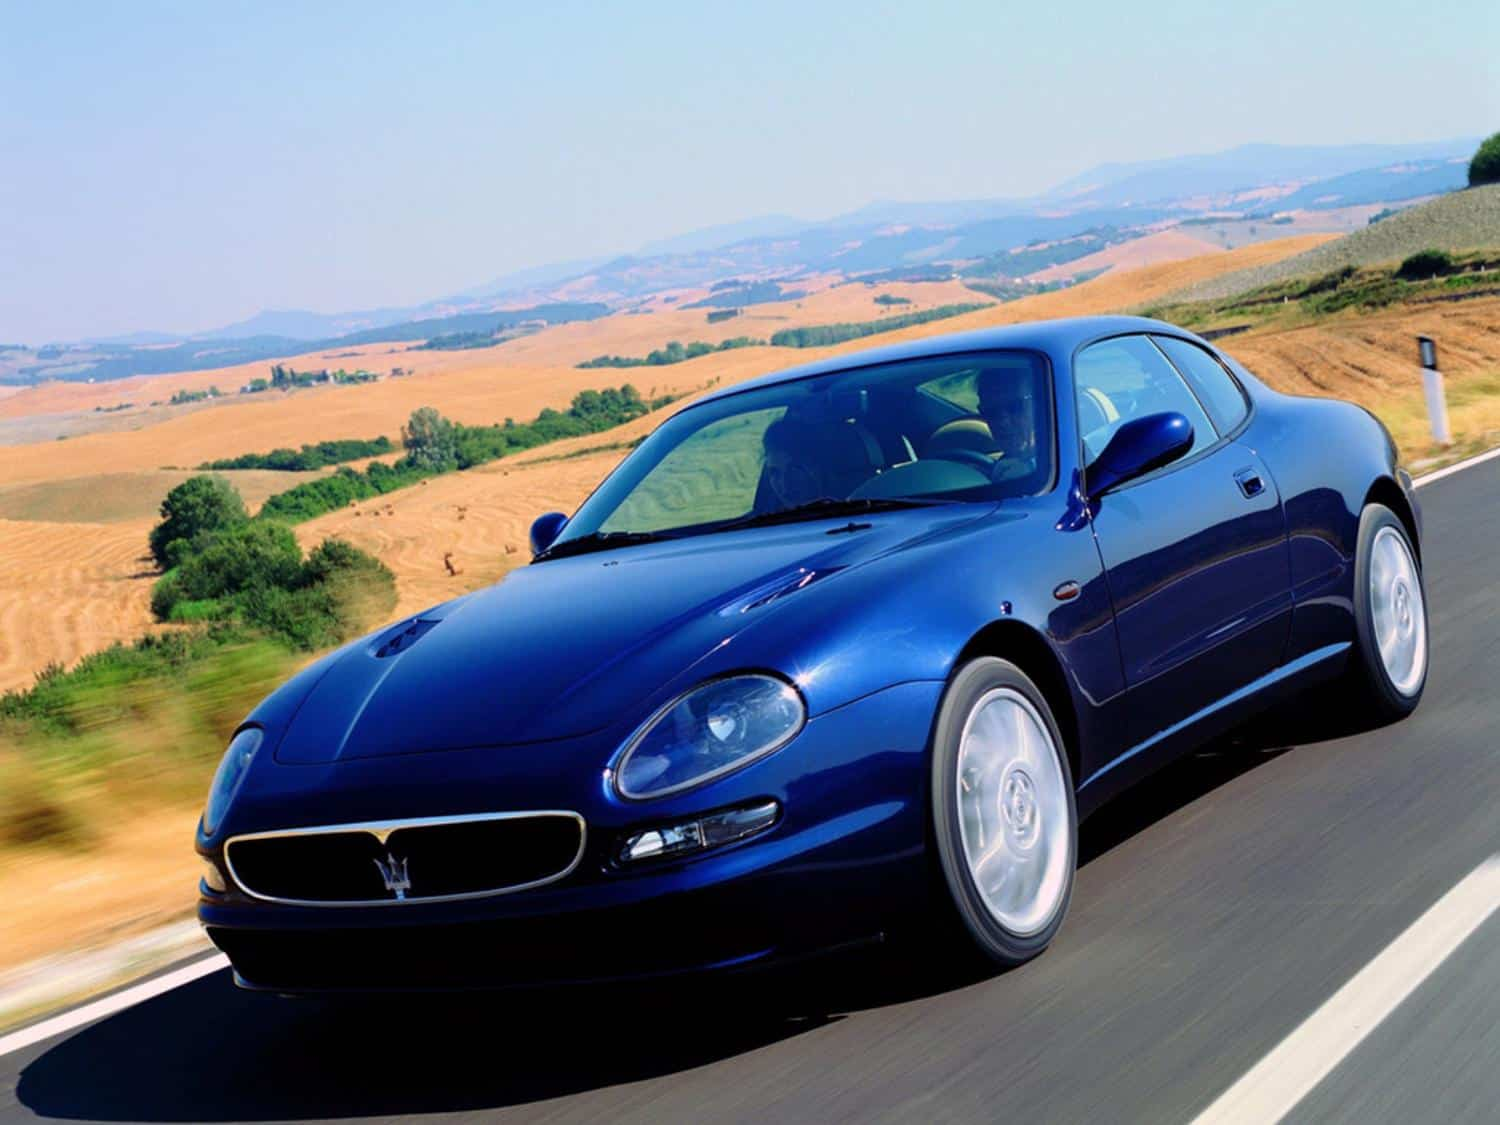 Maserati 3200 GT - 10 cool cars for under £10,000 (The Car Expert)